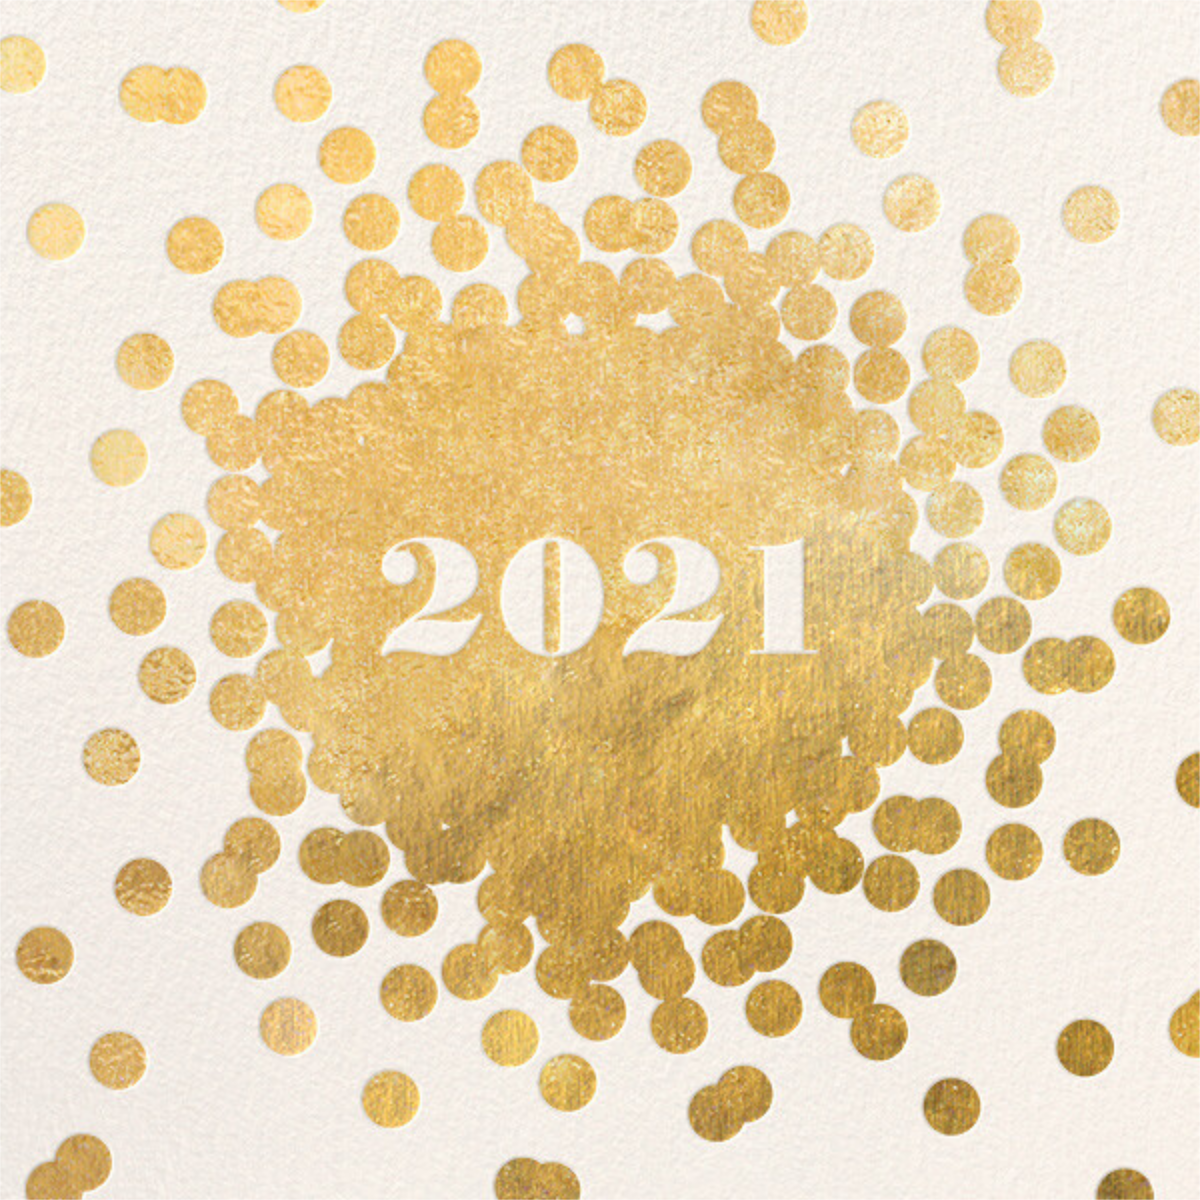 Confetti New Year (Invitation) - Gold/Cream - kate spade new york - New Year's Eve